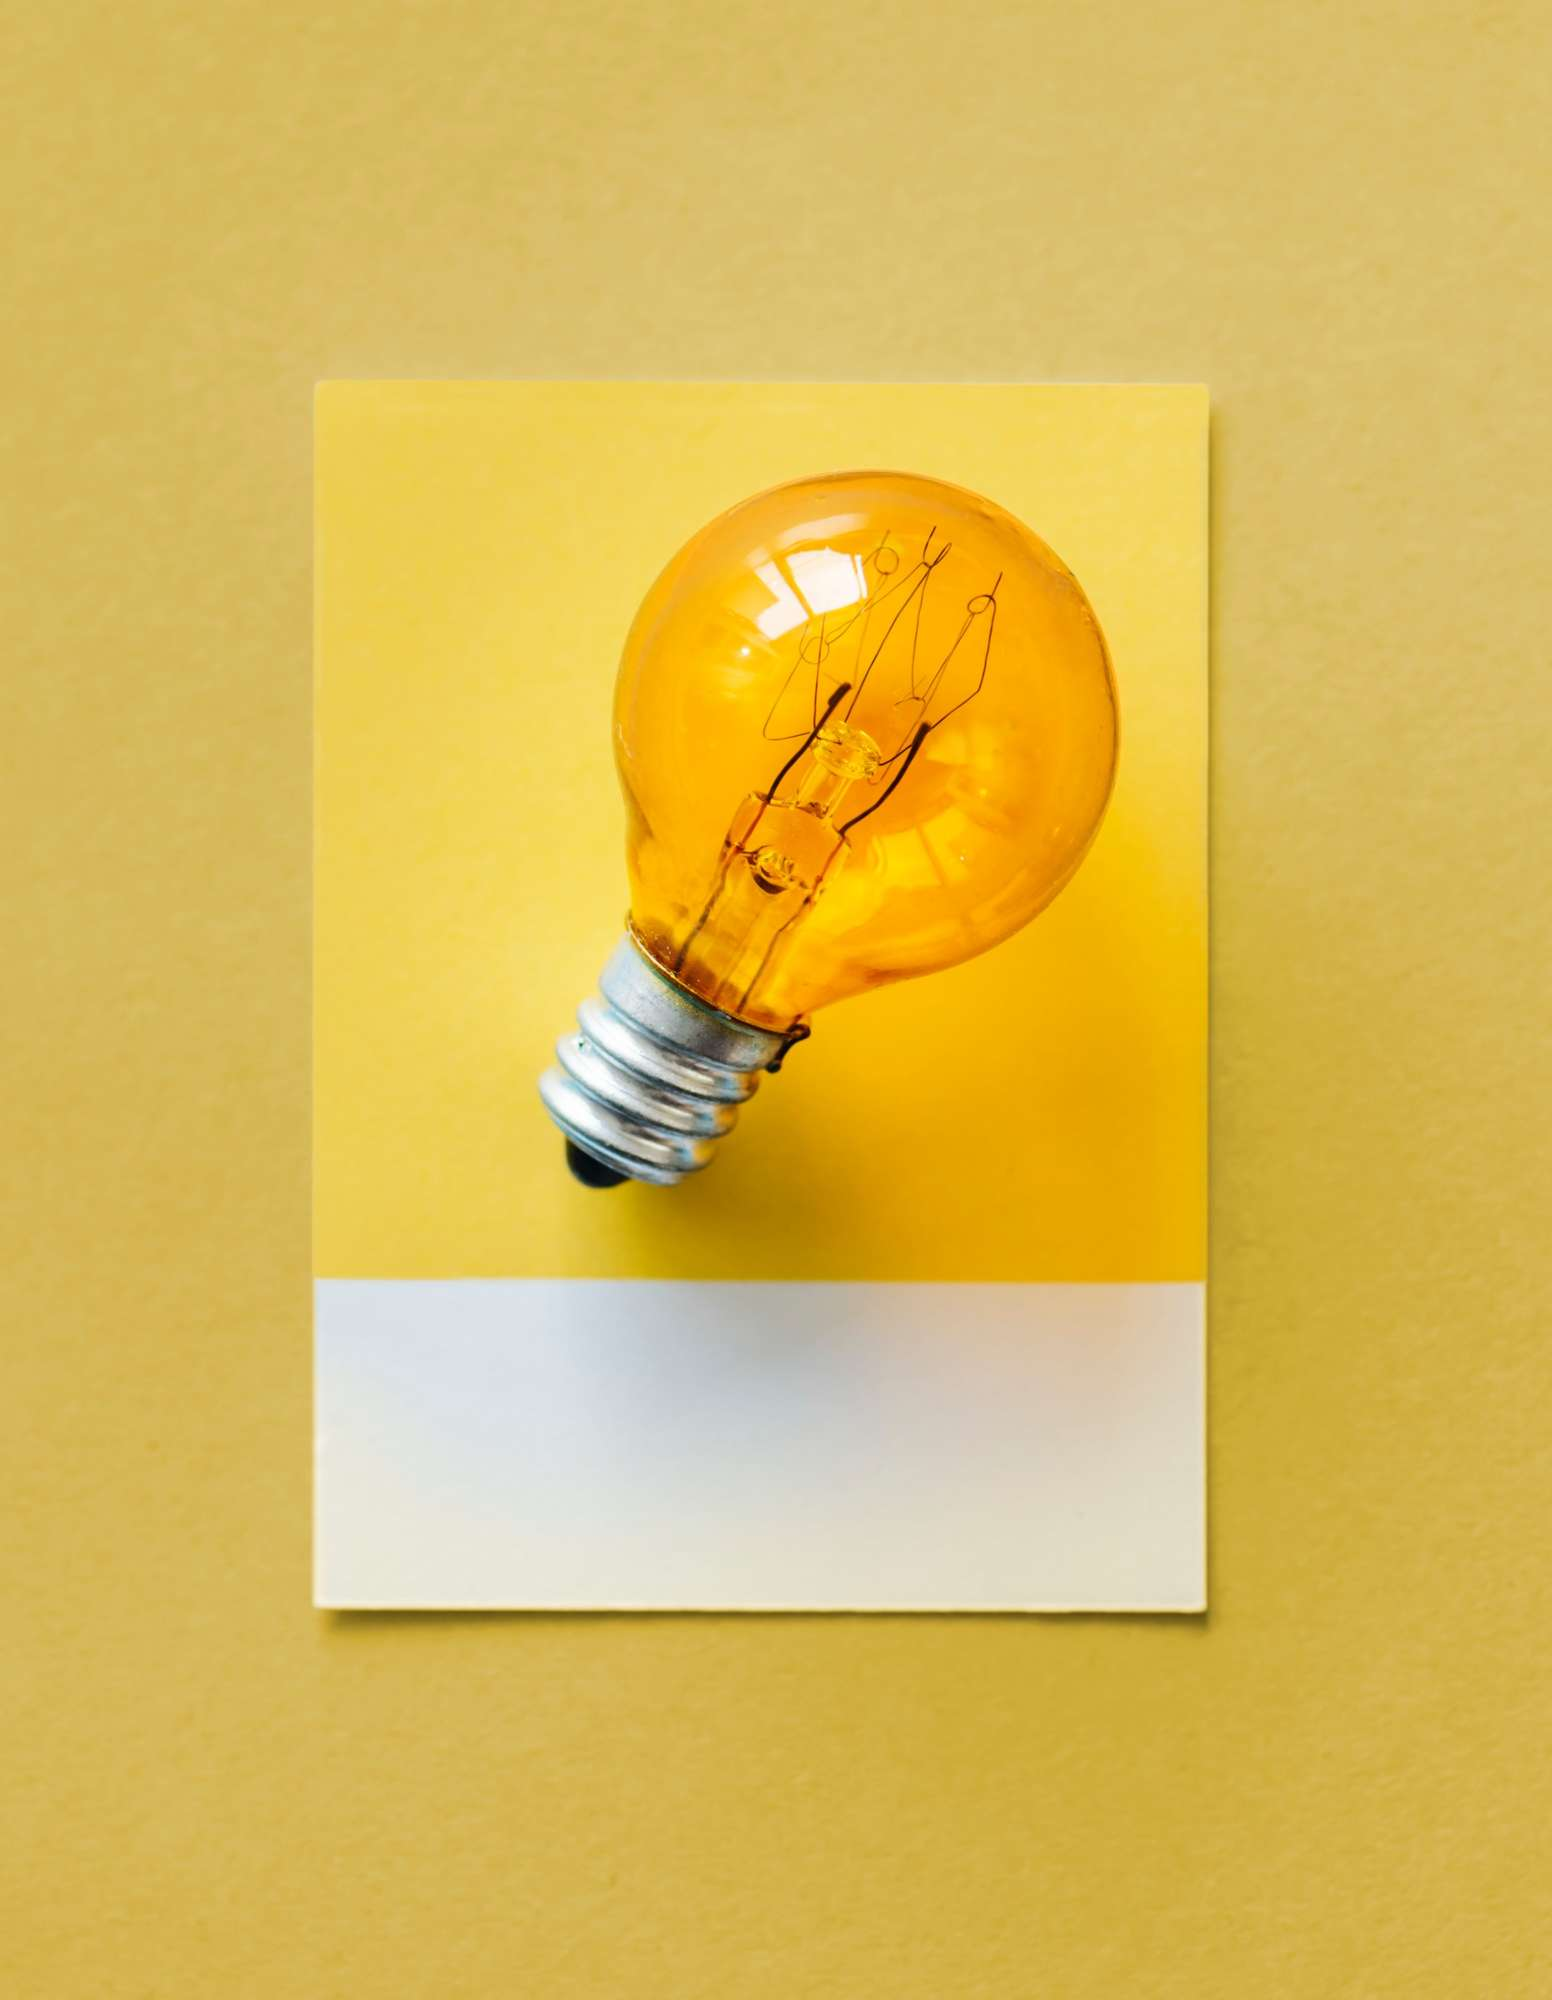 bulb-card-close-up-1083626